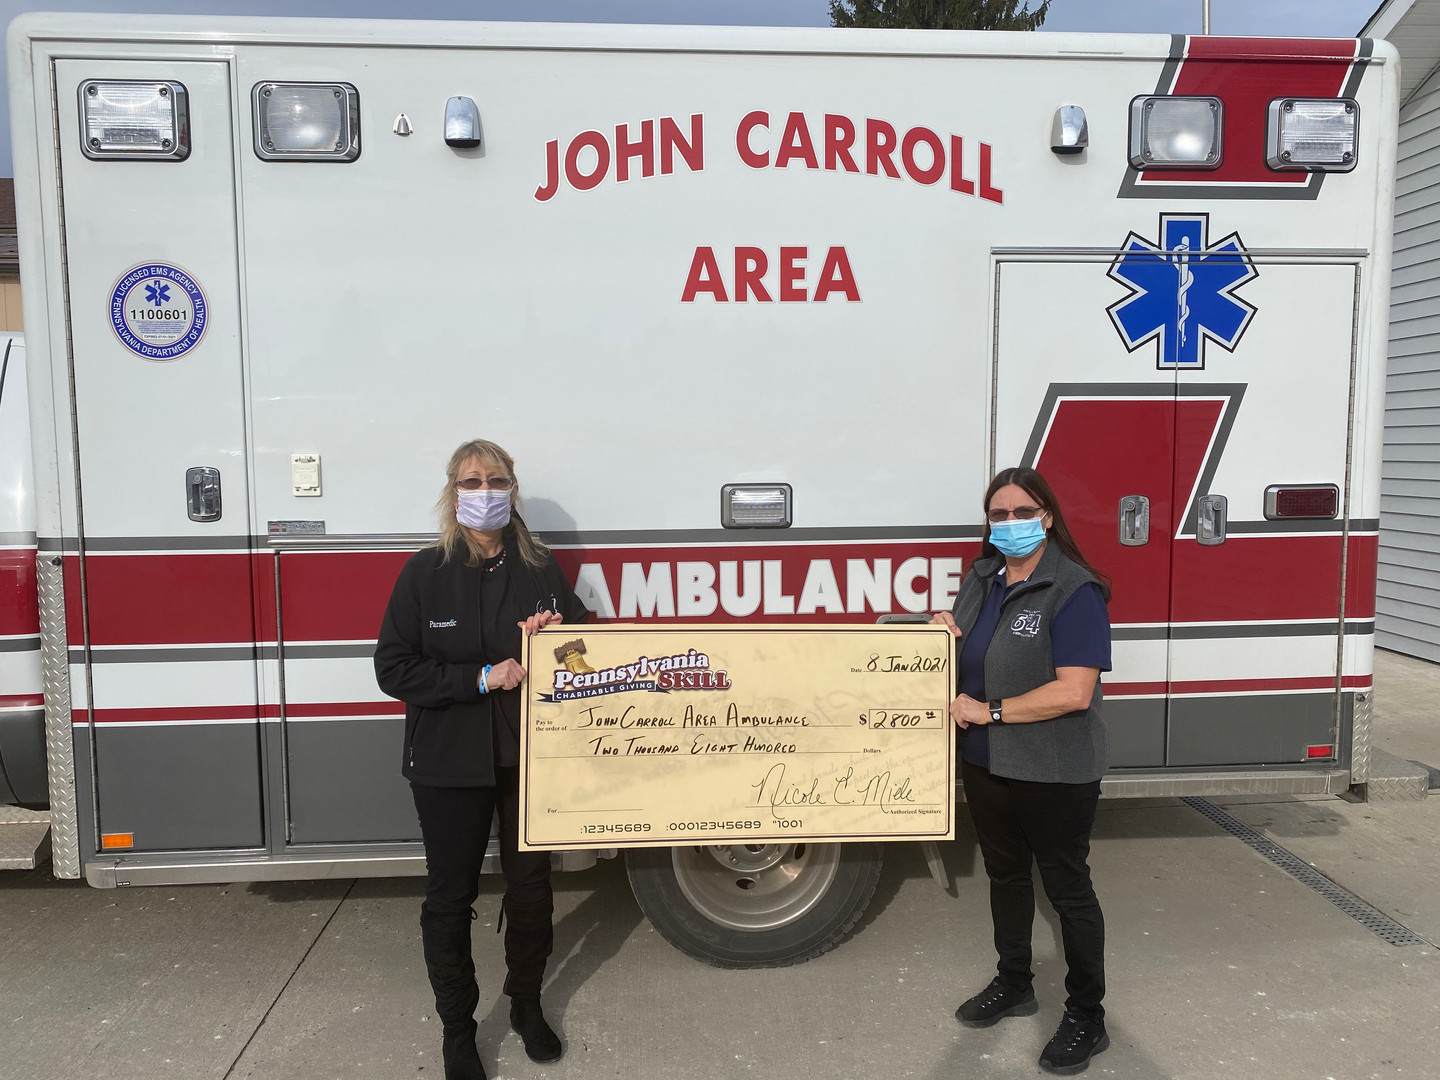 John Carroll Area Ambulance